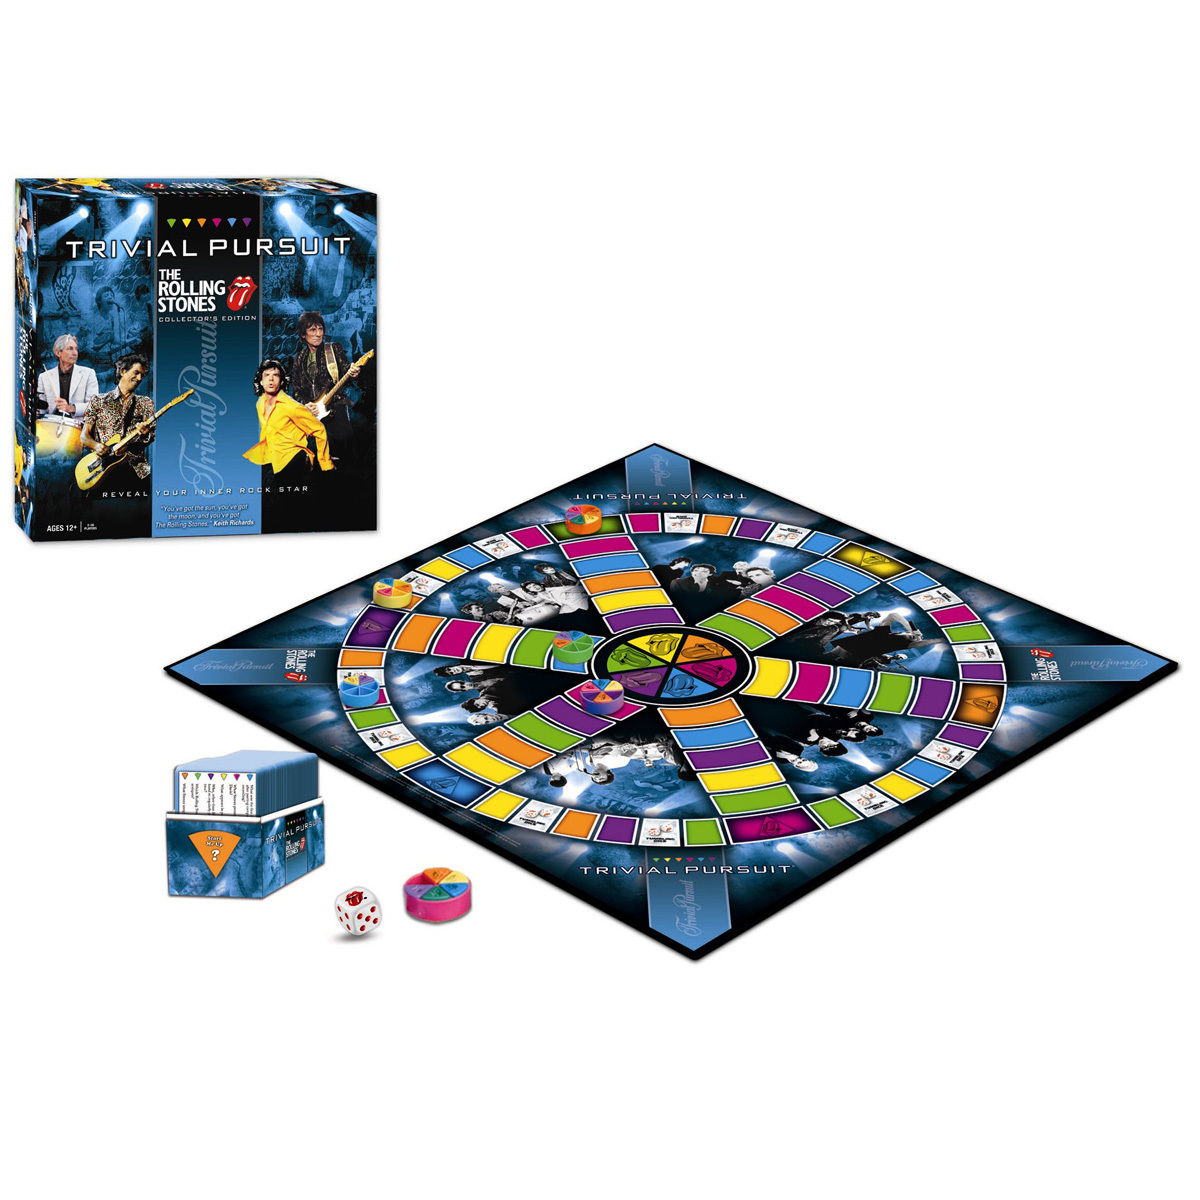 TRIVIAL PURSUIT: The Rolling Stones Collector's Edition